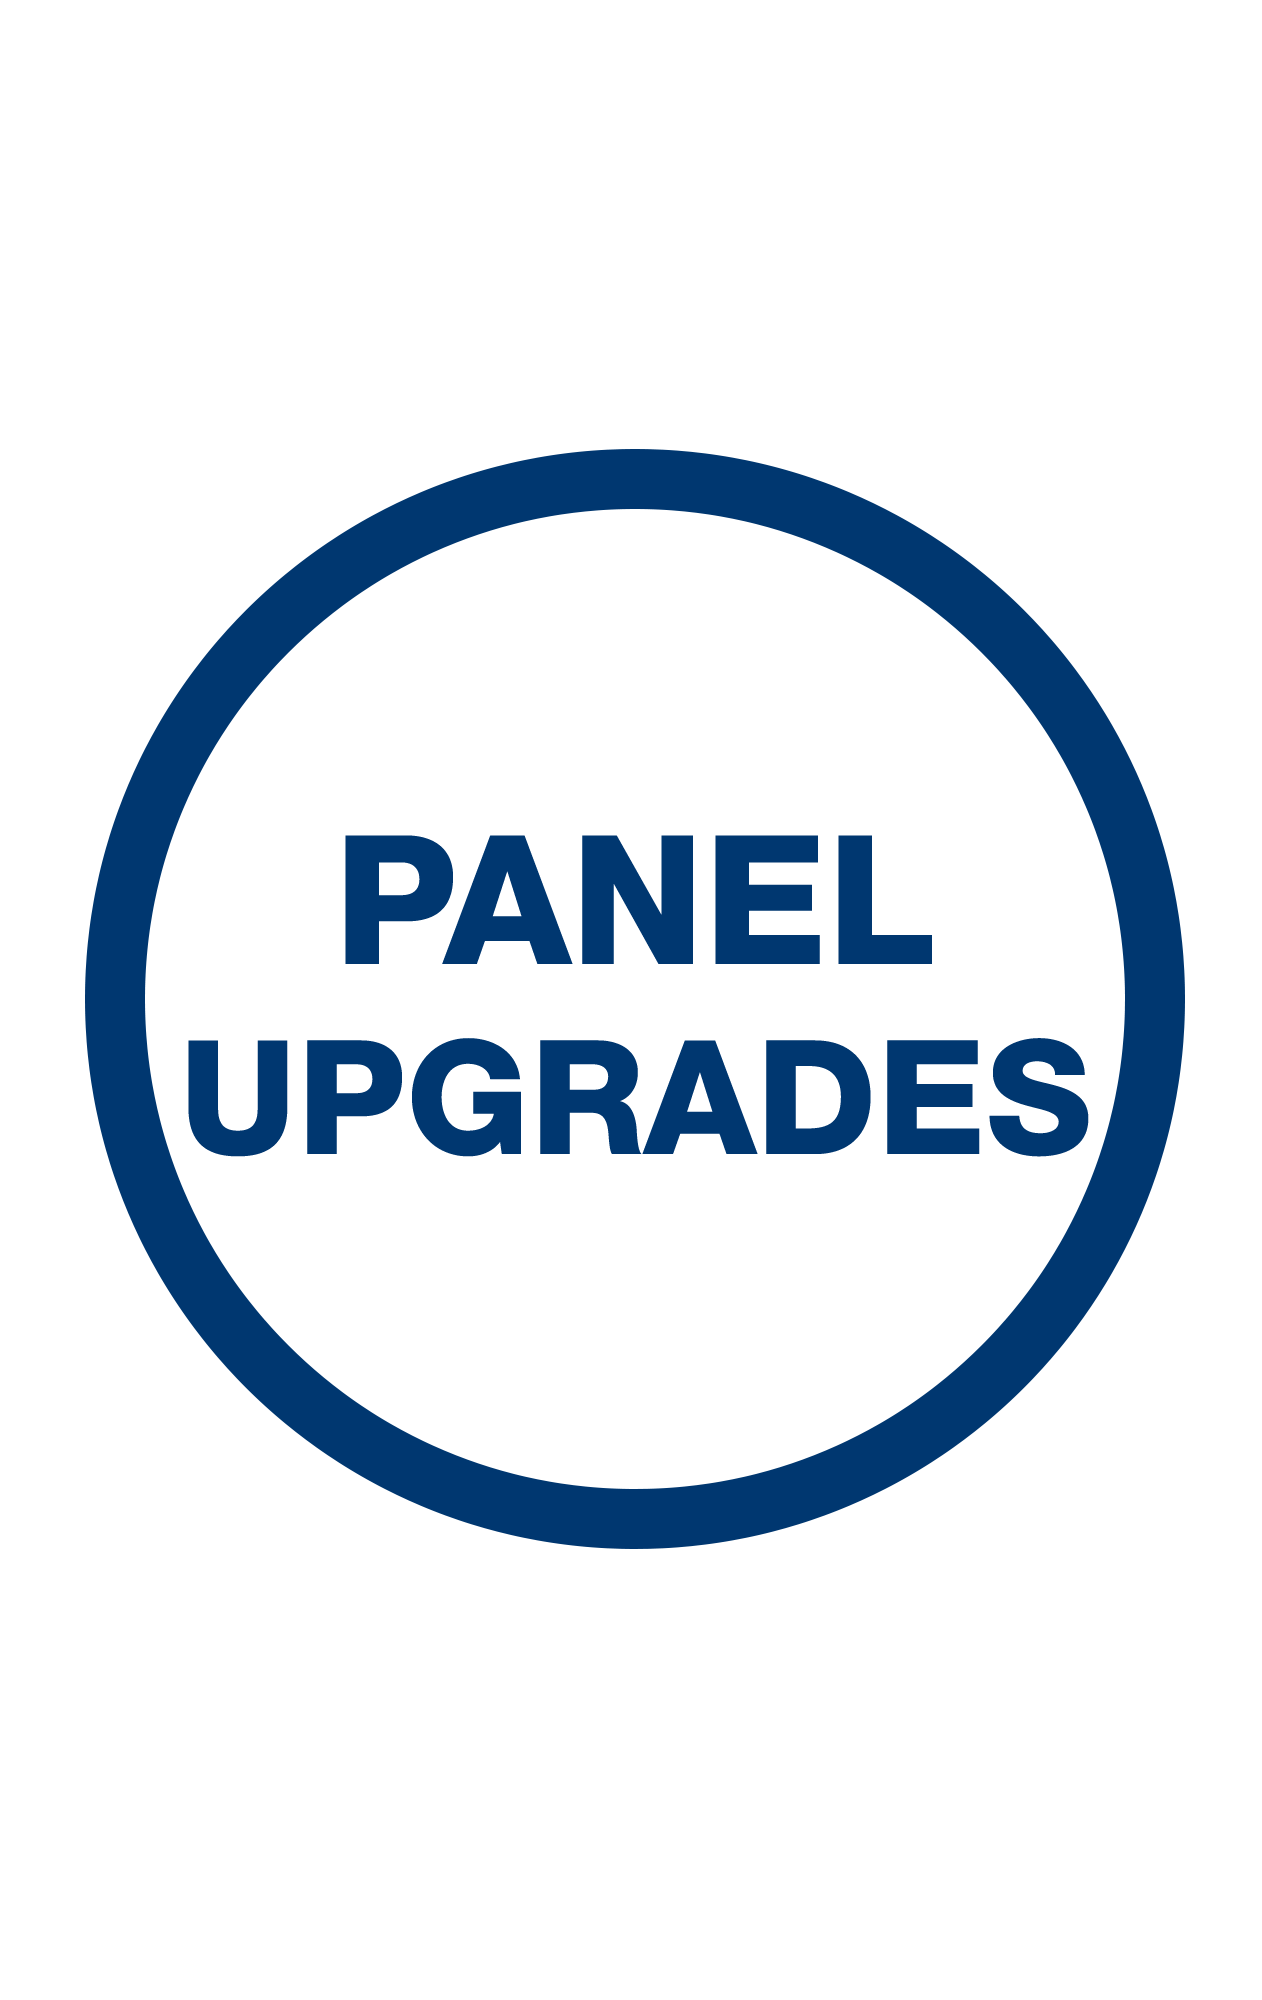 panel-upgrades-2.png